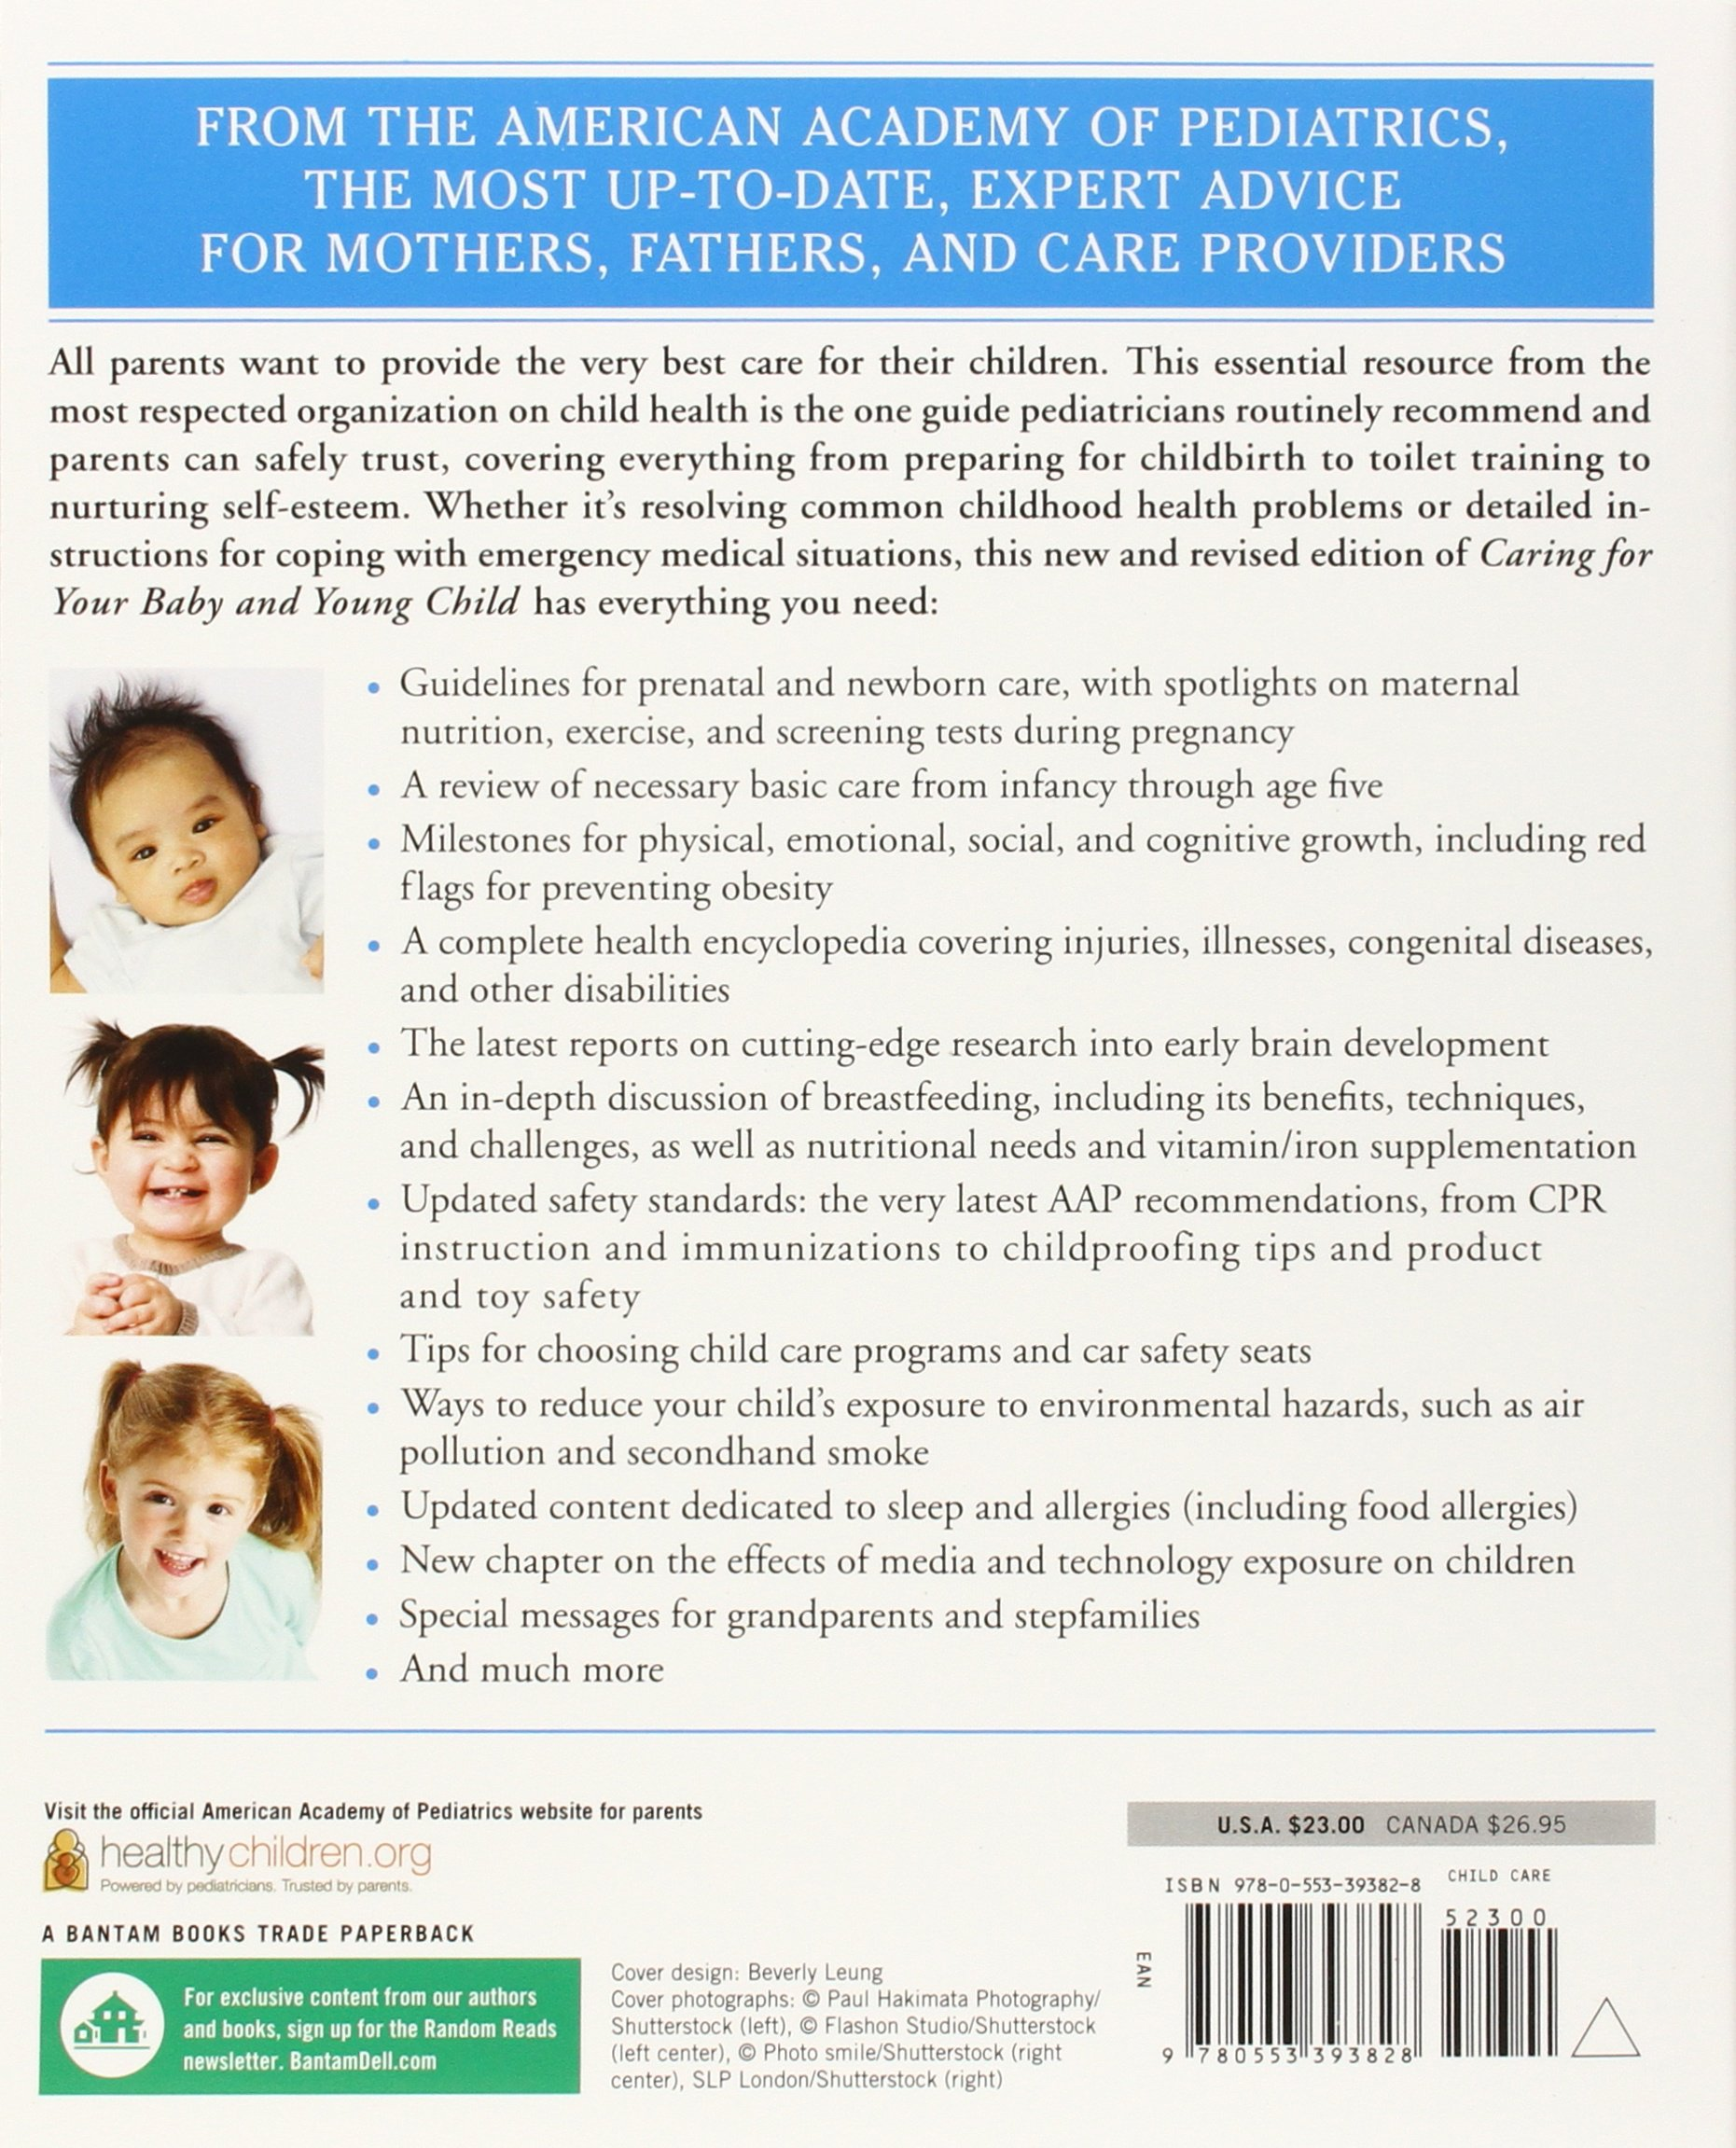 Caring for Your Baby and Young Child, 6th Edition: Birth to Age 5: American  Academy of Pediatrics: 9780553393828: Amazon.com: Books